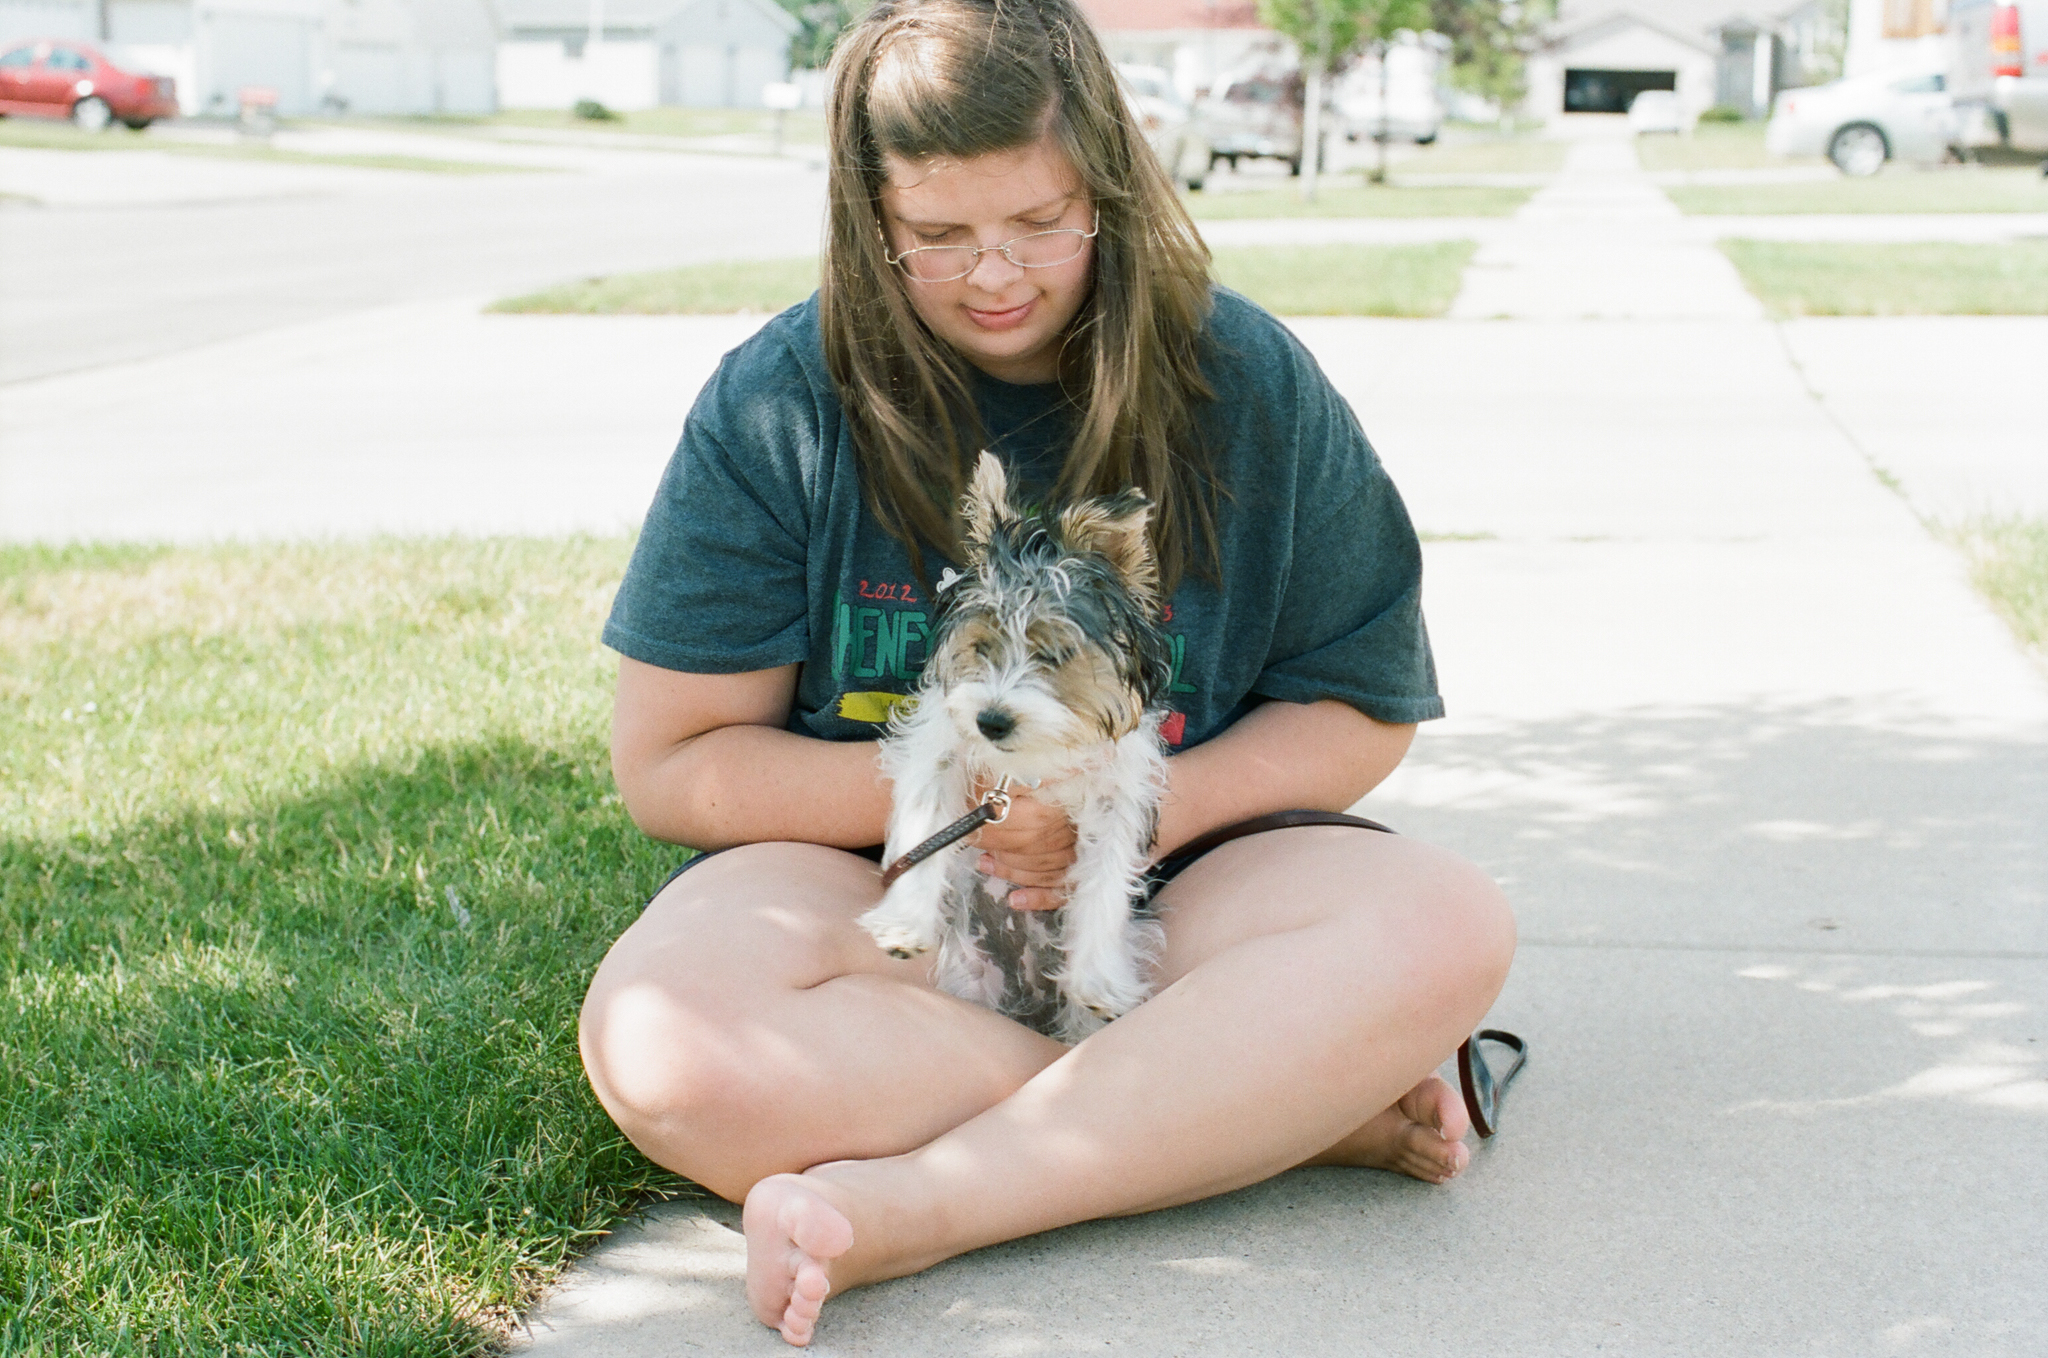 Teen girl and puppy outside.